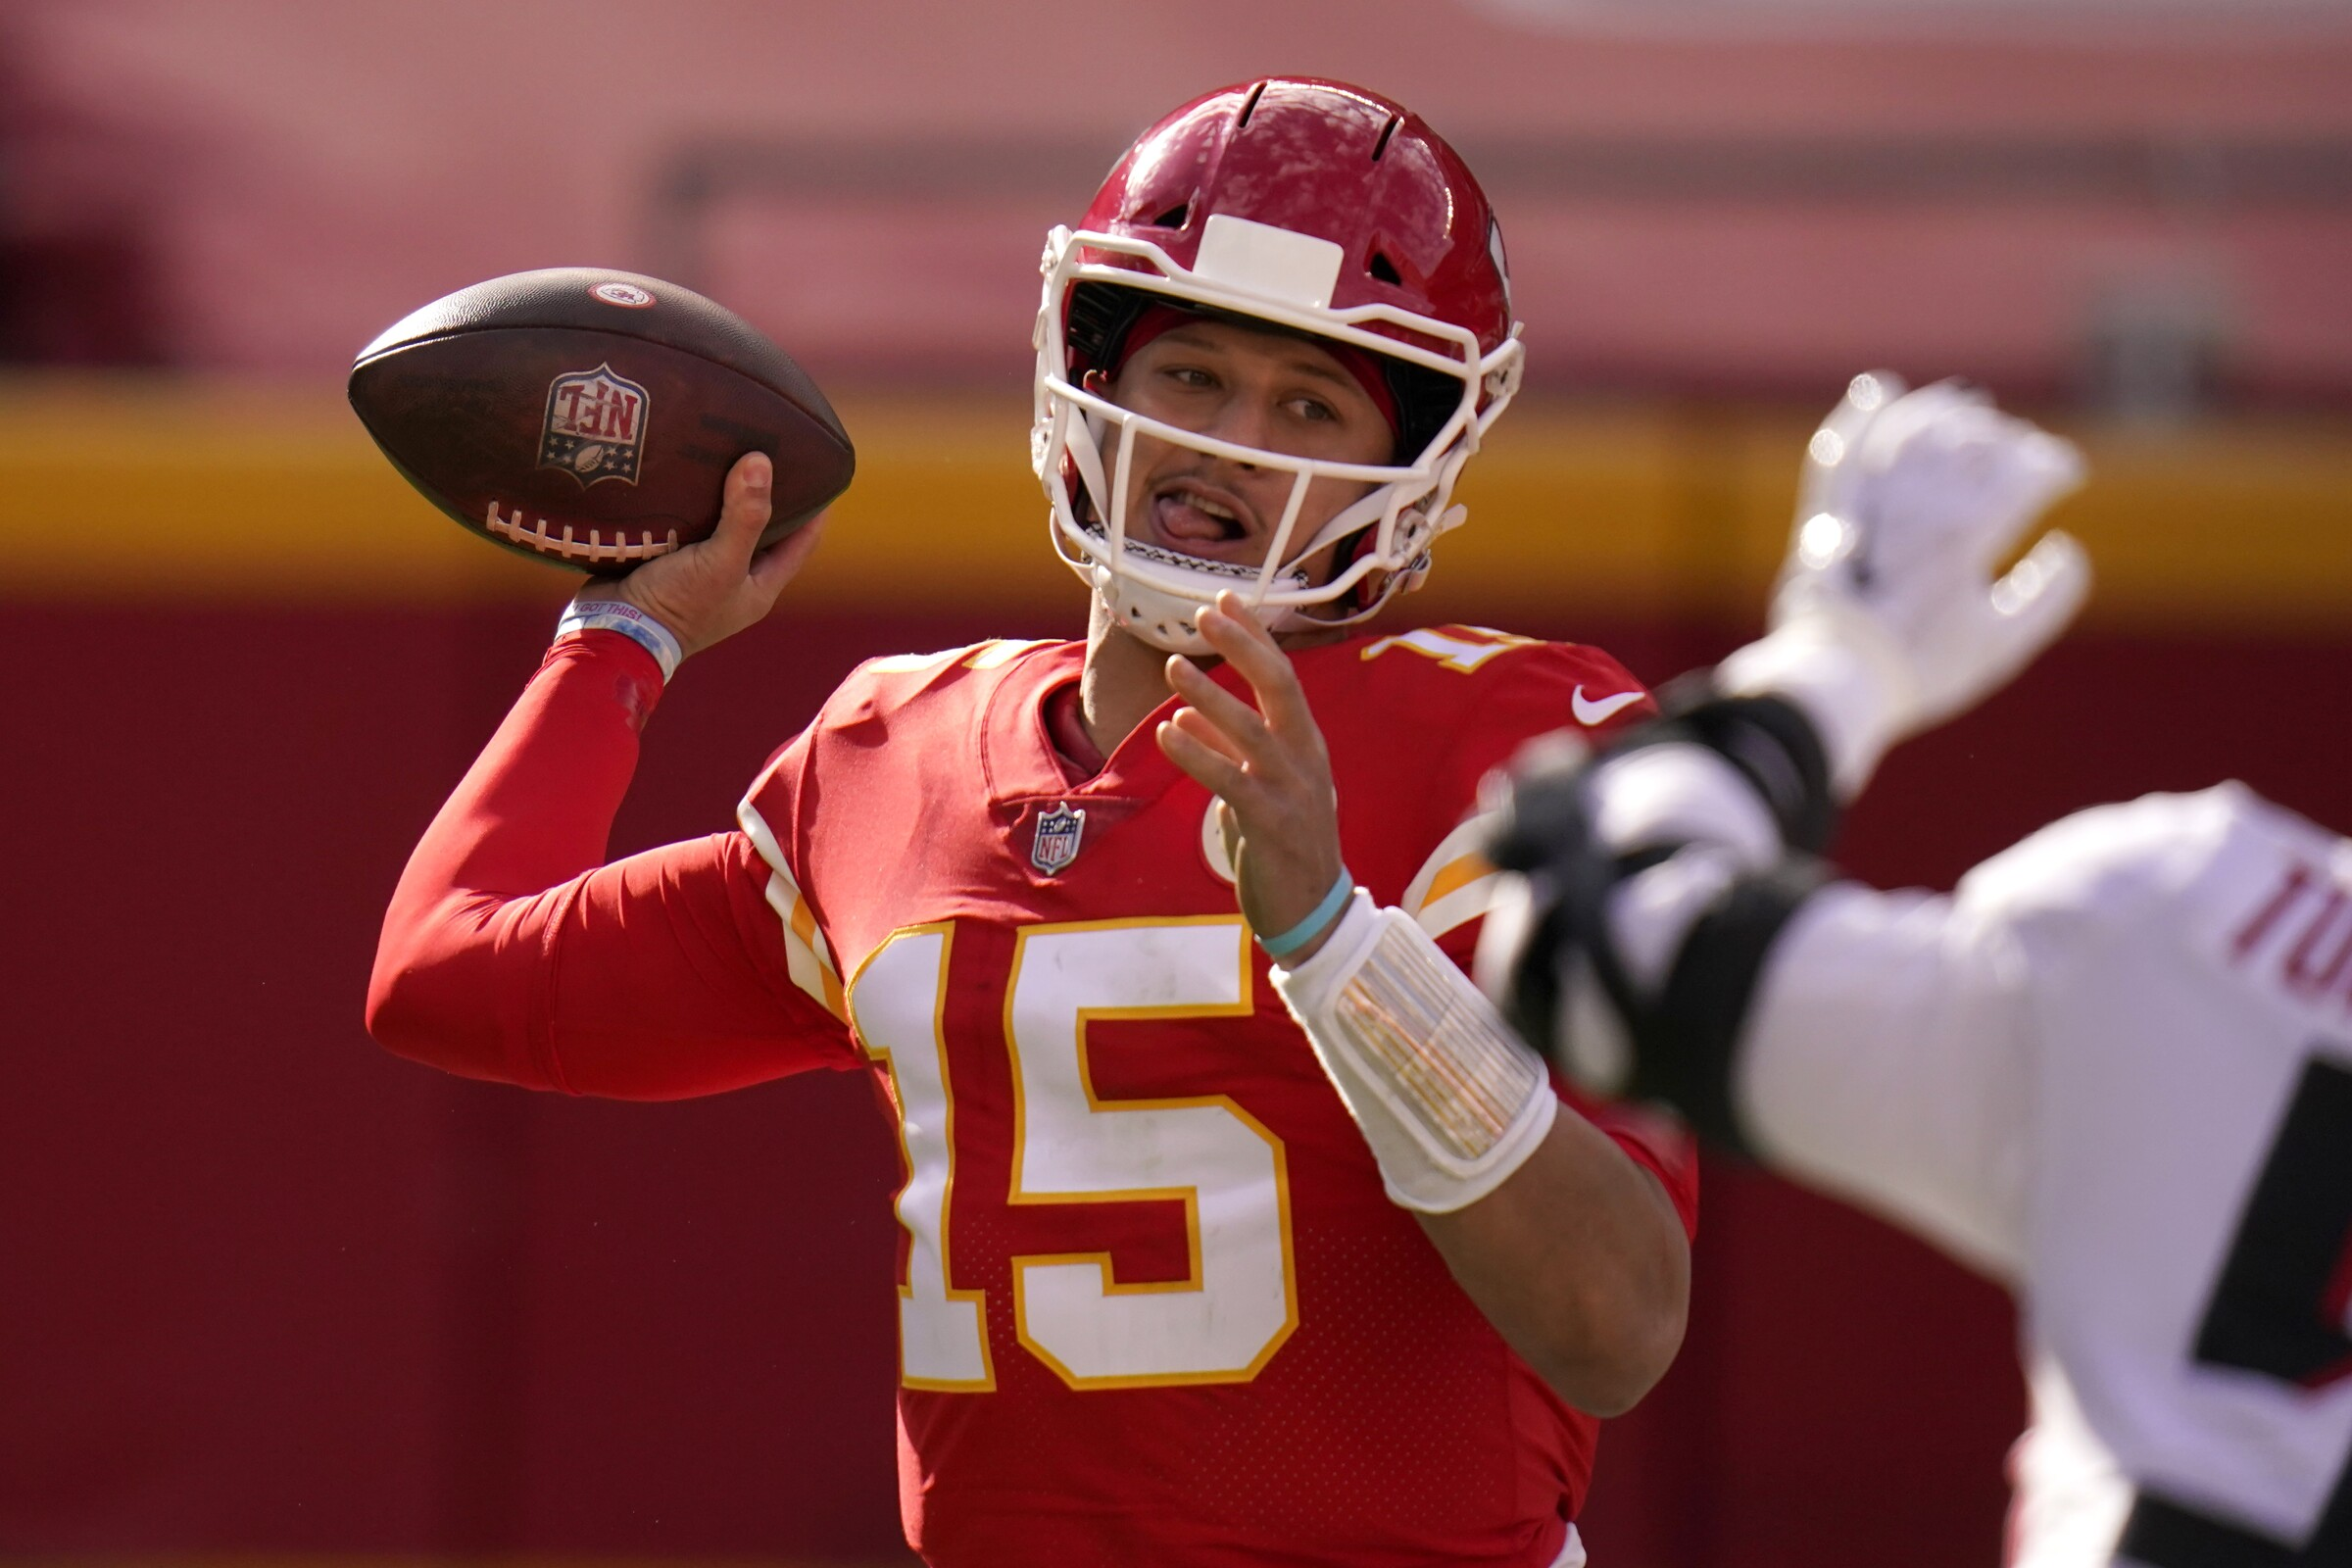 Kansas City Chiefs quarterback Patrick Mahomes throws during the first half of a 17-14 win over Atlanta.